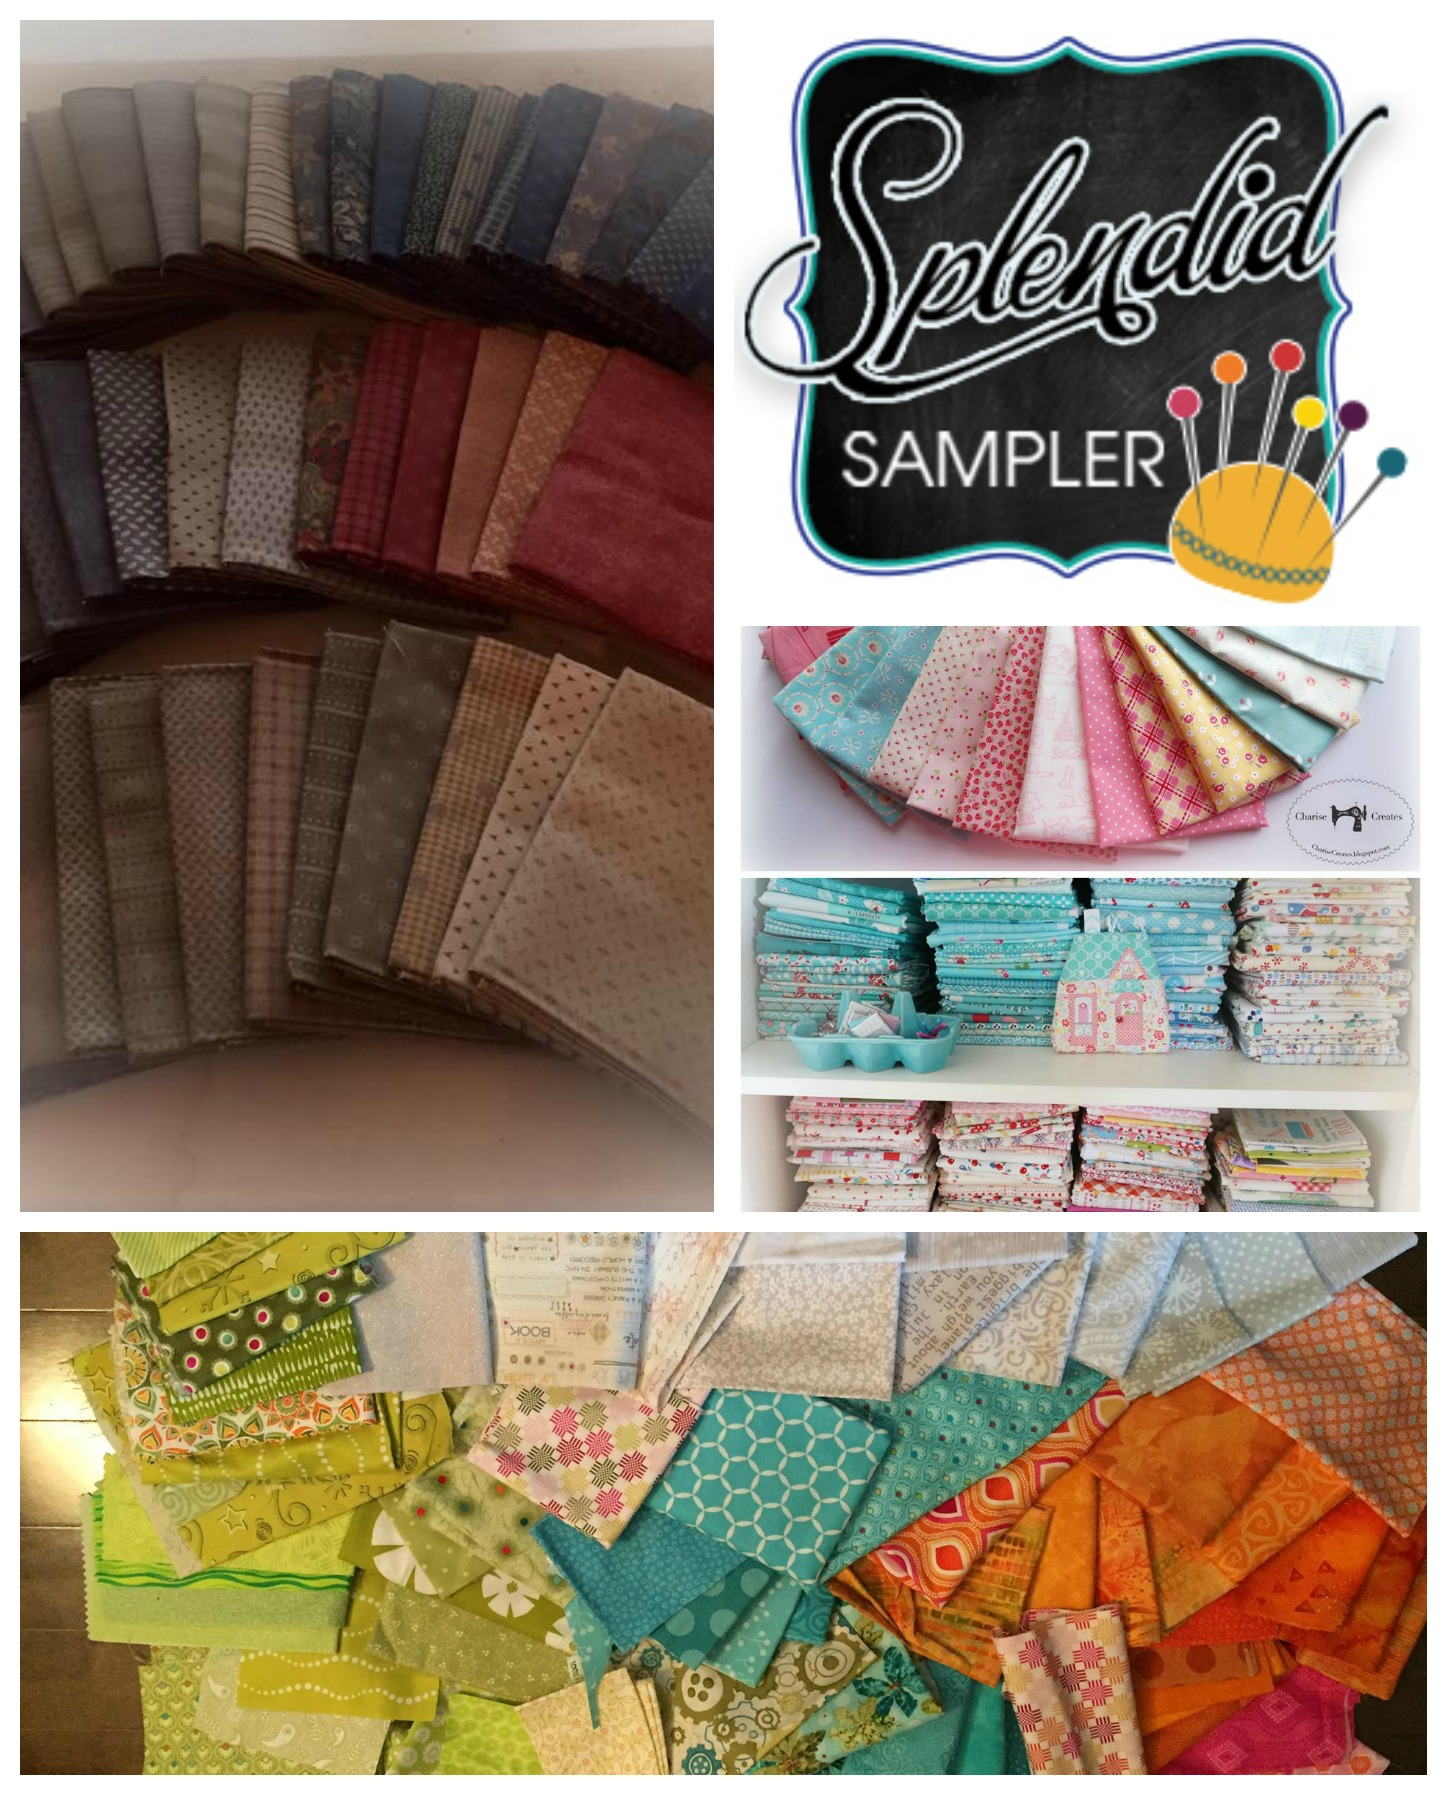 pat sloan splendid sampler fabric options 1